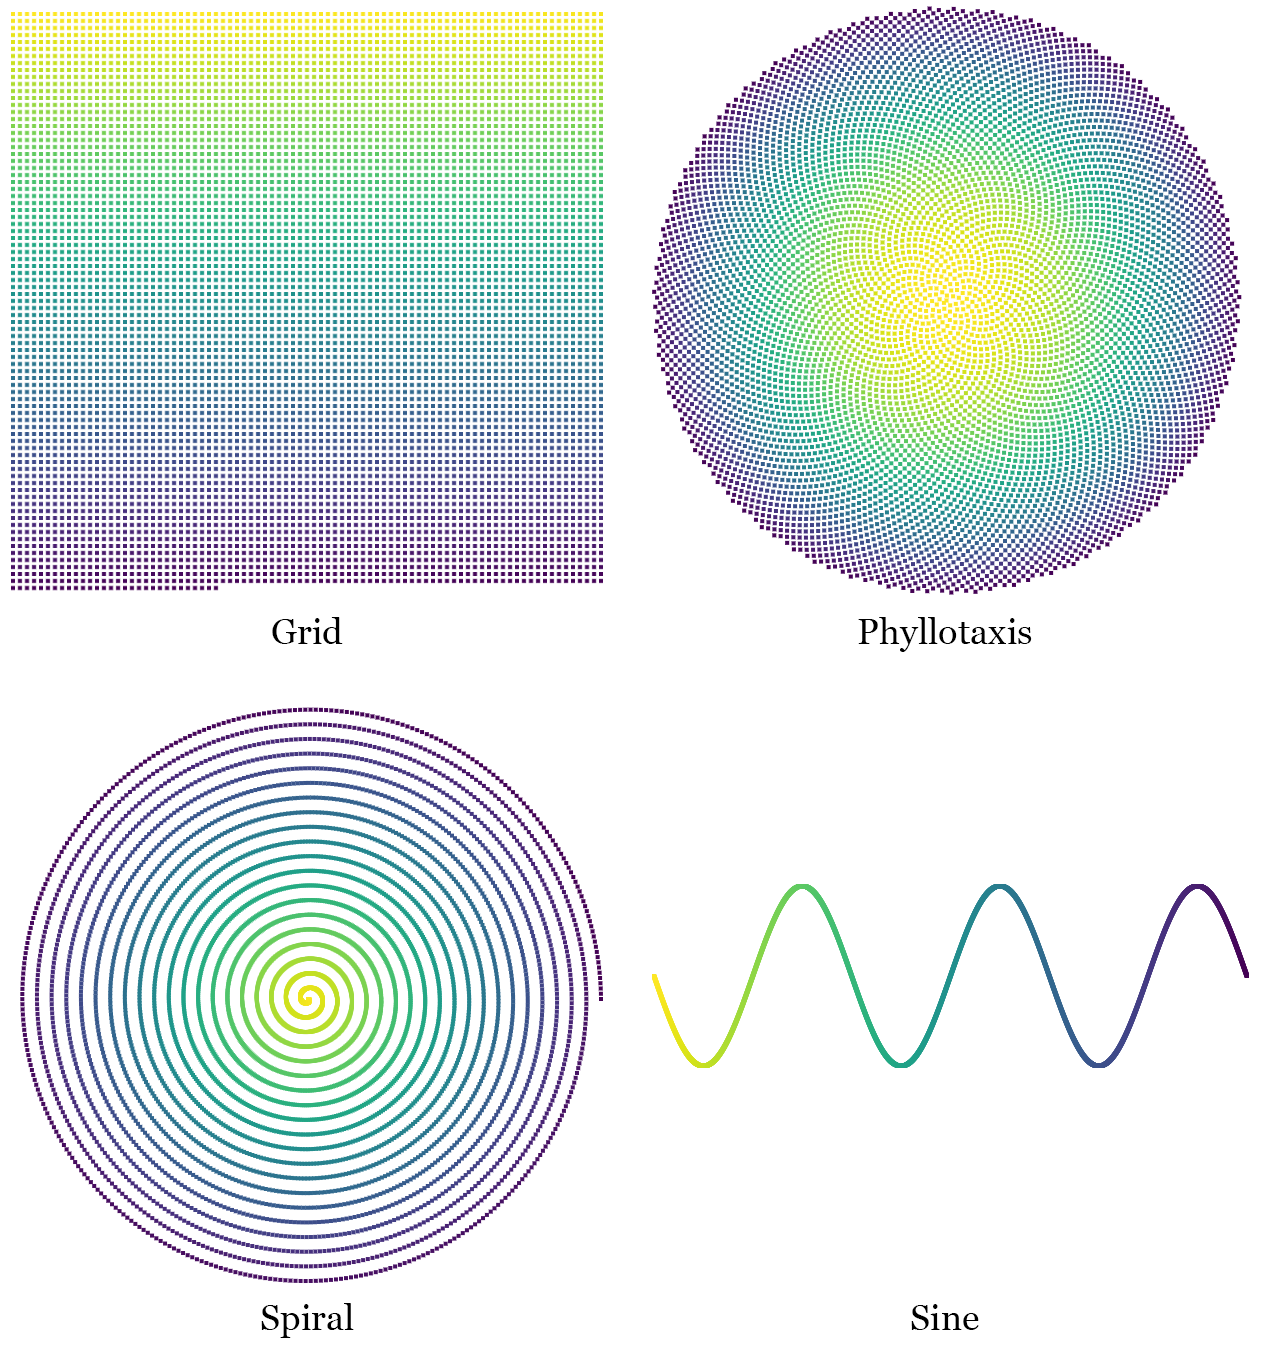 Layouts used in example: grid, phylllotaxis, spiral, sine